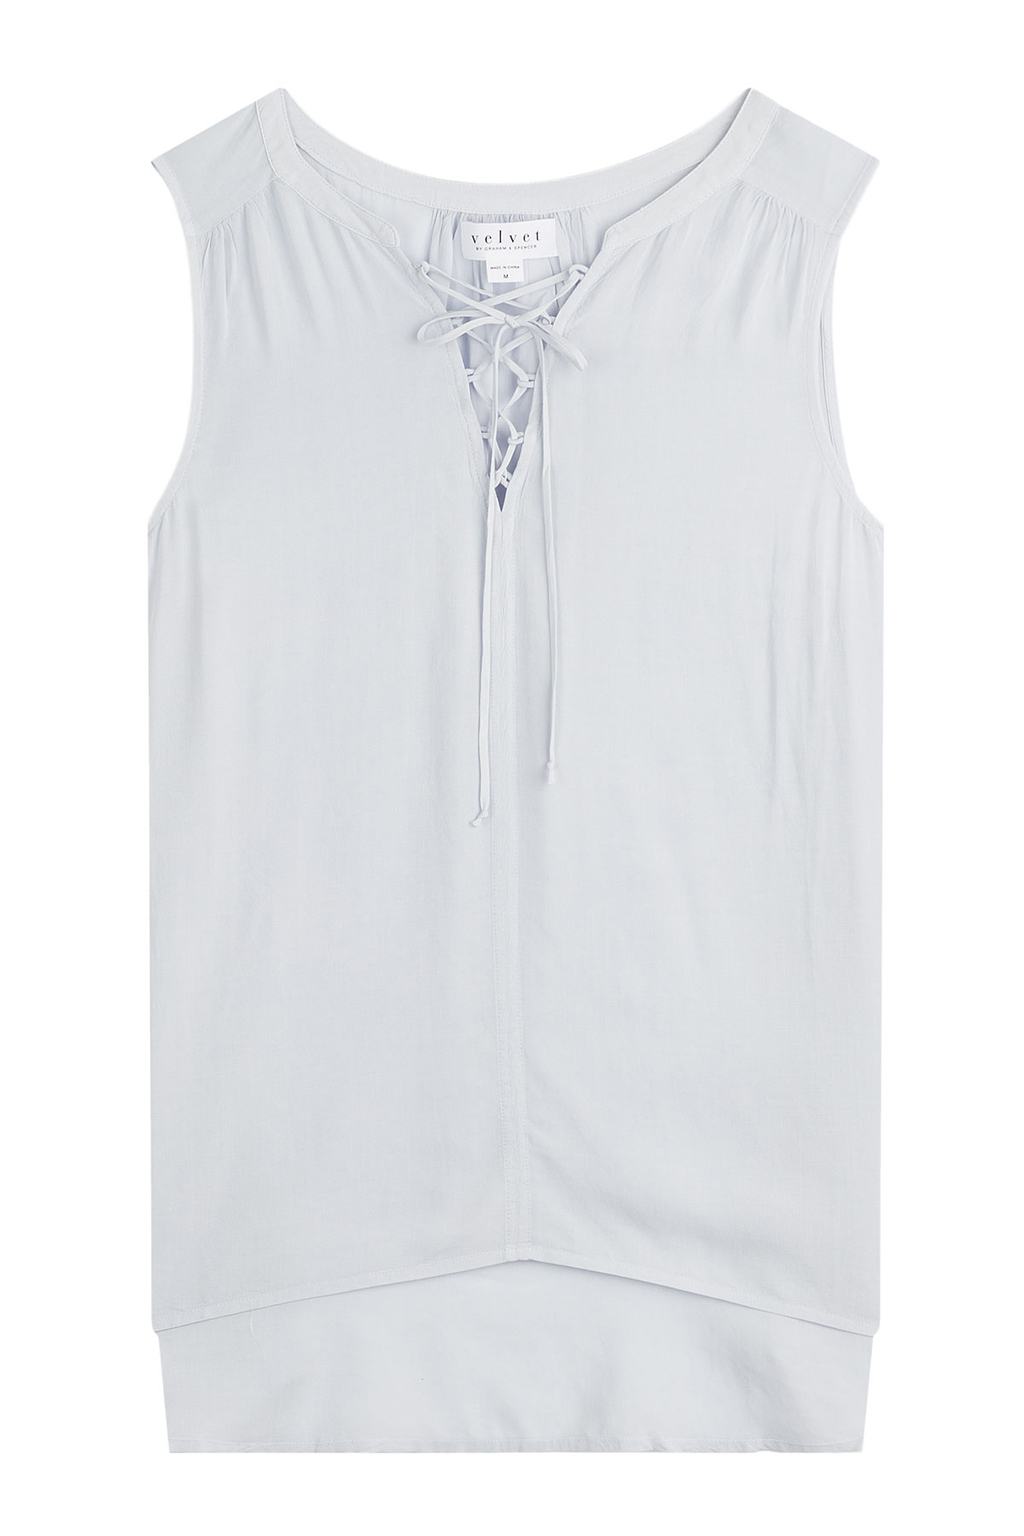 Lace Up Sleeveless Top - neckline: v-neck; pattern: plain; sleeve style: sleeveless; predominant colour: pale blue; occasions: casual; length: standard; style: top; fibres: viscose/rayon - 100%; fit: body skimming; sleeve length: sleeveless; pattern type: fabric; texture group: jersey - stretchy/drapey; season: s/s 2016; wardrobe: highlight